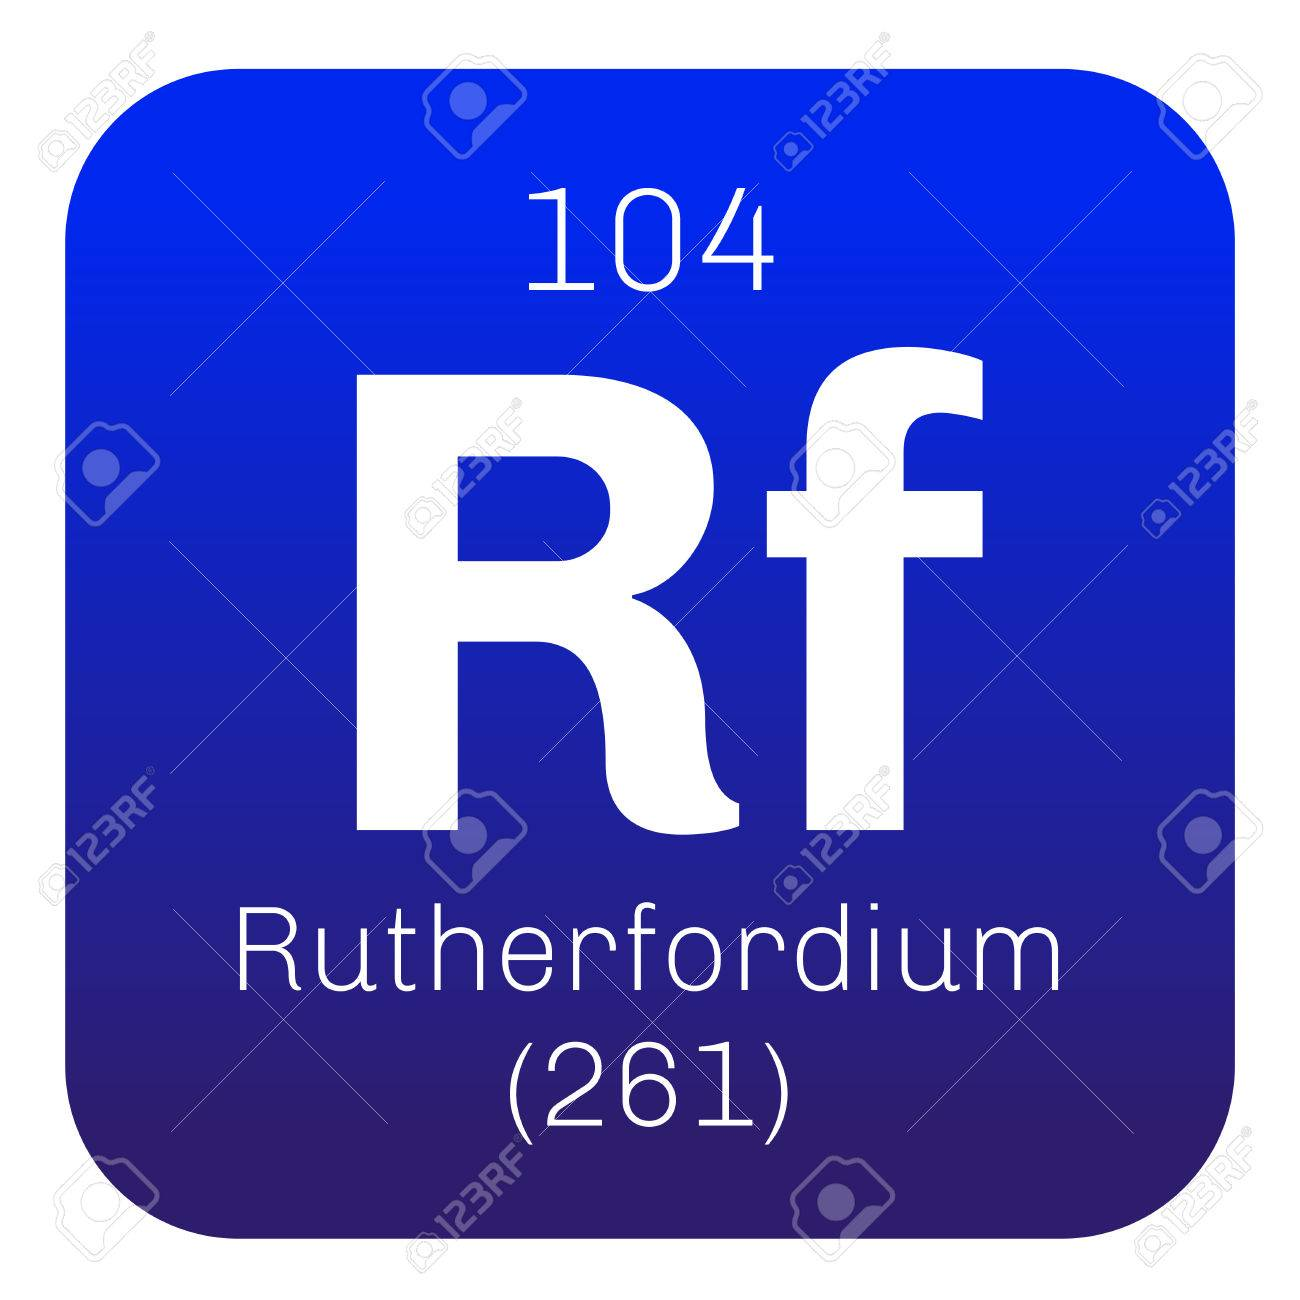 Rutherfordium chemical element radioactive synthetic element rutherfordium chemical element radioactive synthetic element colored icon with atomic number and atomic weight gamestrikefo Gallery